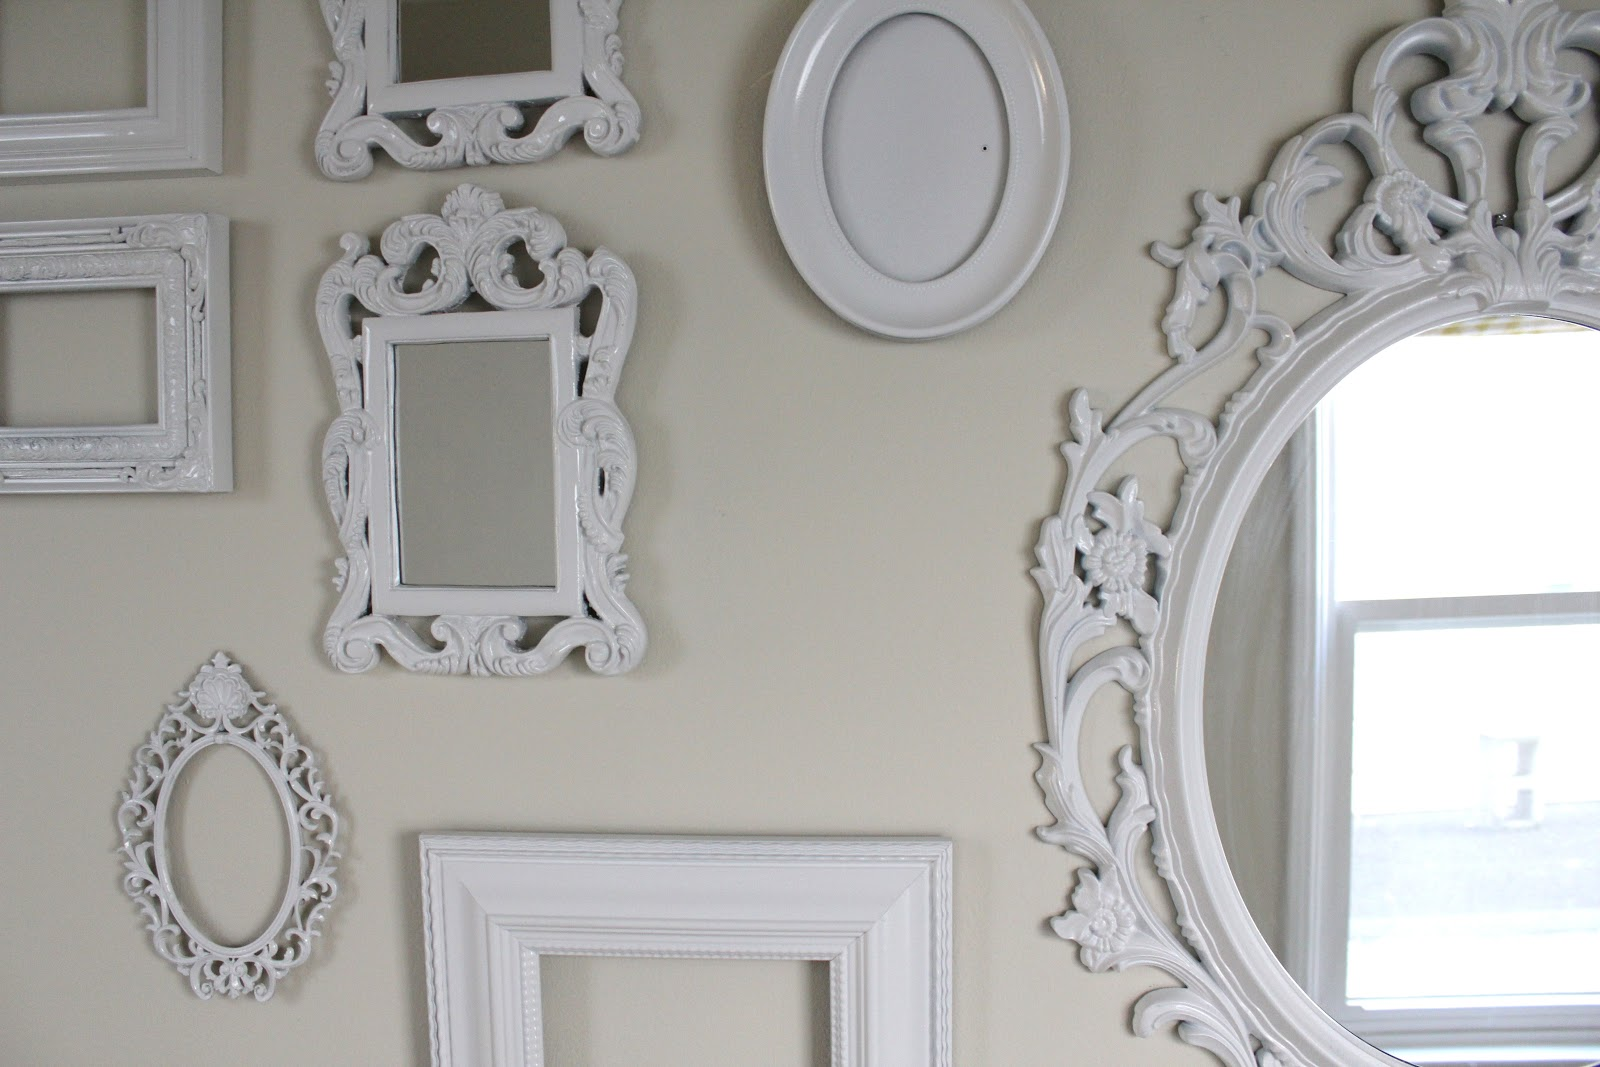 cup half full gallery wall of white ornate frames. Black Bedroom Furniture Sets. Home Design Ideas